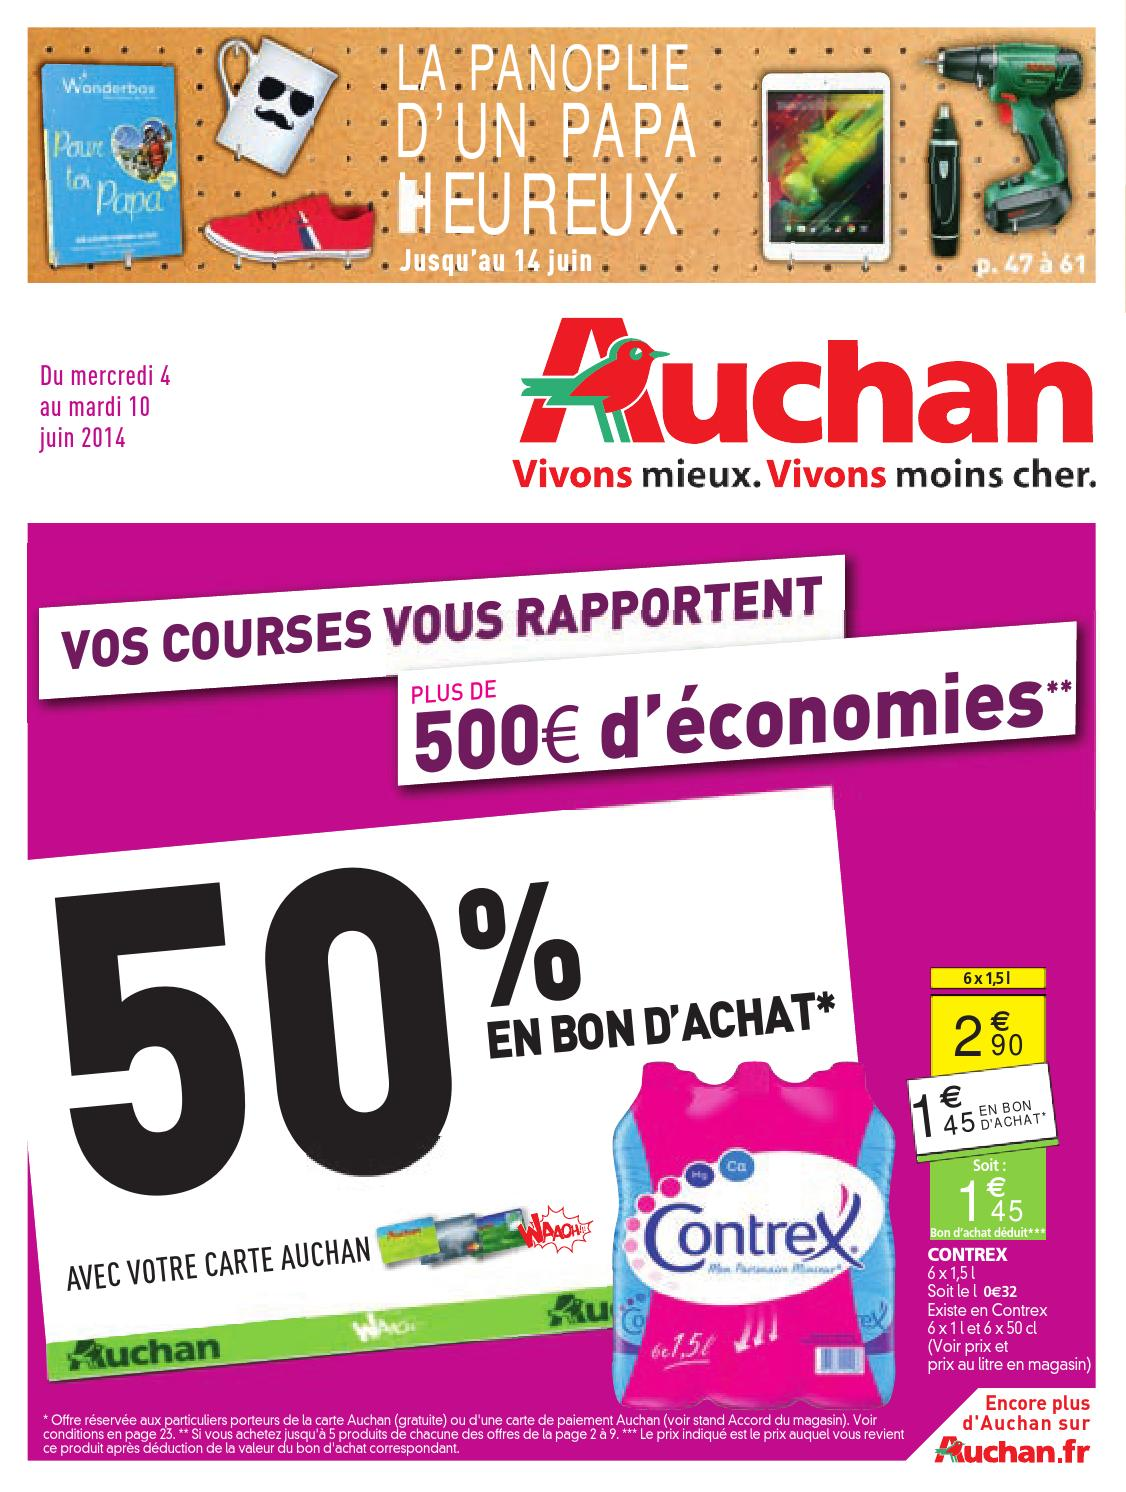 Auchan catalogue 4 10juin2014 by PromoCatalogues.com - issuu